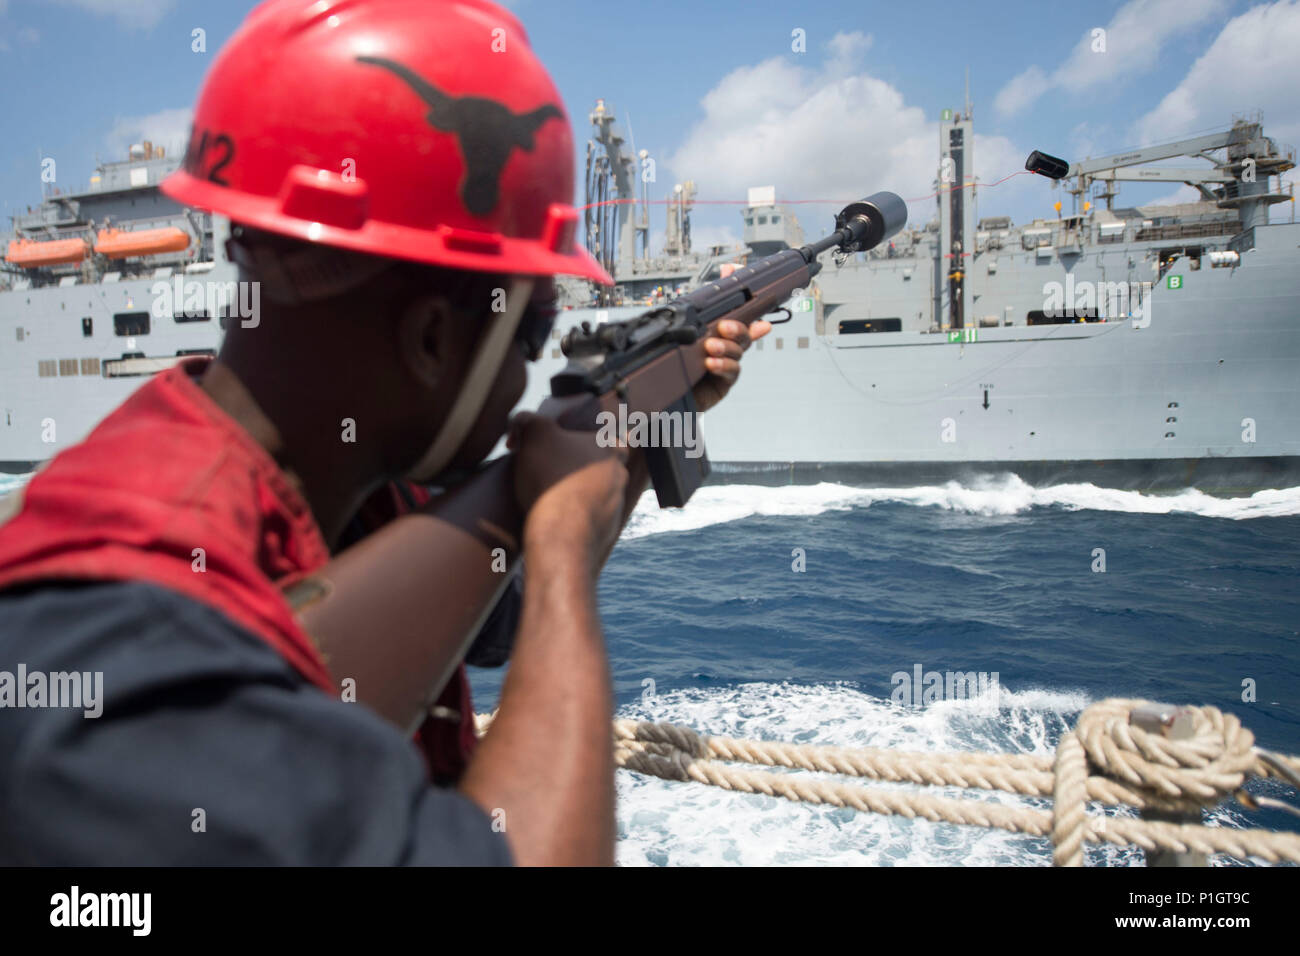 161026-N-DQ503-010  ARABIAN SEA (Oct. 26, 2016) Petty Officer 2nd Class Allen Marshall fires a shot line from the guided-missile destroyer USS Roosevelt (DDG 80) to the fleet replenishment oiler USNS Laramie (T-AO 203) during a replenishment-at-sea. Roosevelt, deployed as part of the Eisenhower Carrier Strike Group, is supporting maritime security operations and theater security cooperation efforts in the U.S. 5th Fleet area of operations. (U.S. Navy photo by Petty Officer 3rd Class Taylor A. Elberg) - Stock Image